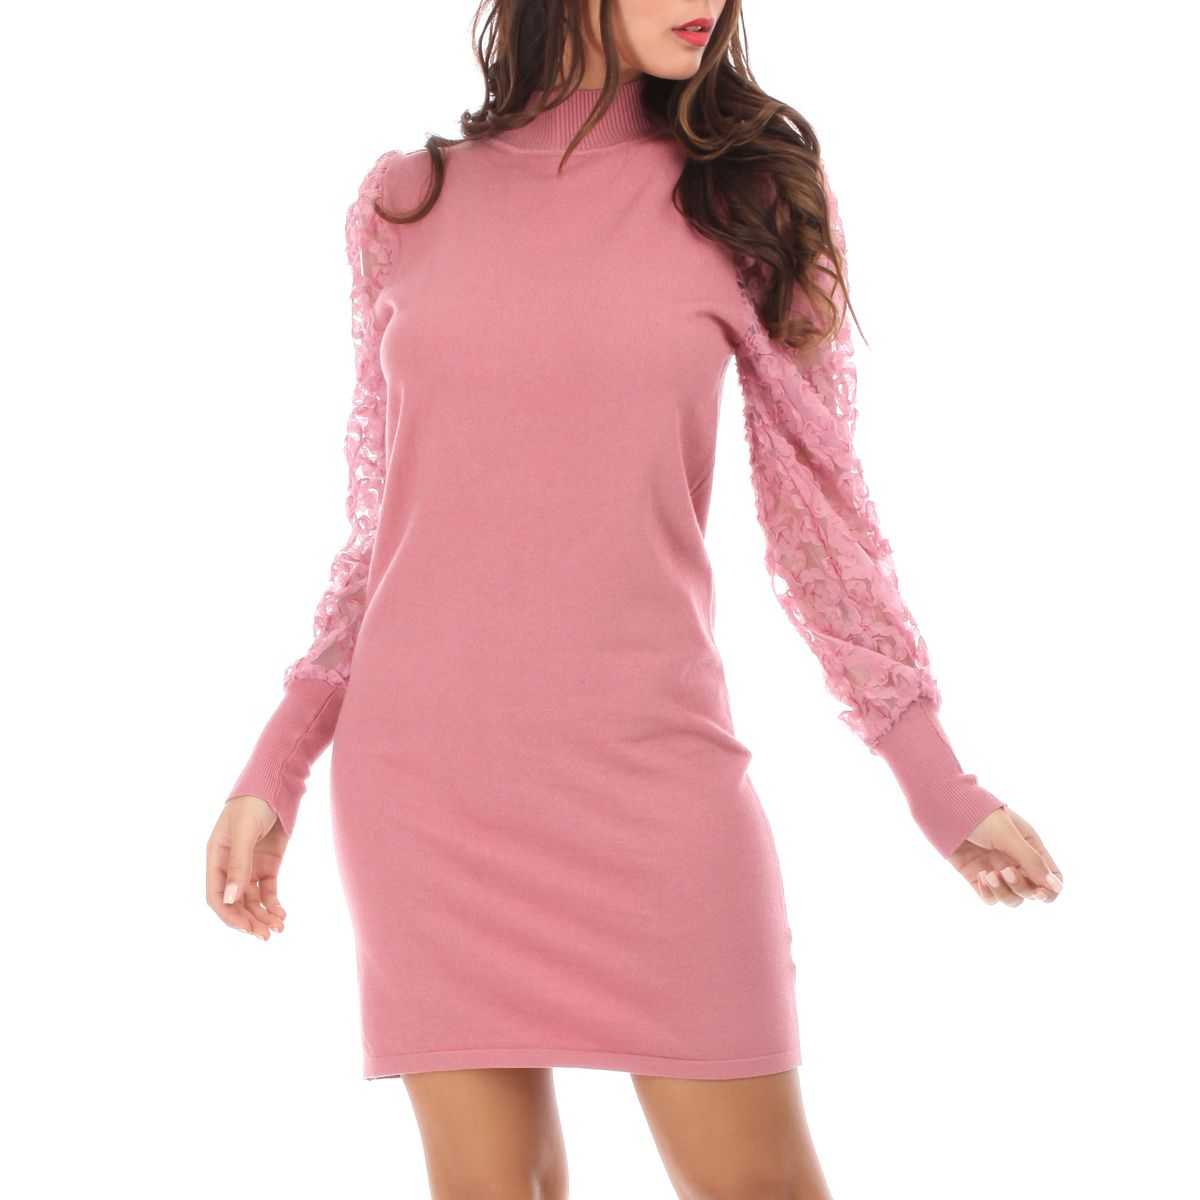 Robe pull à manches bouffantes fleuries rose